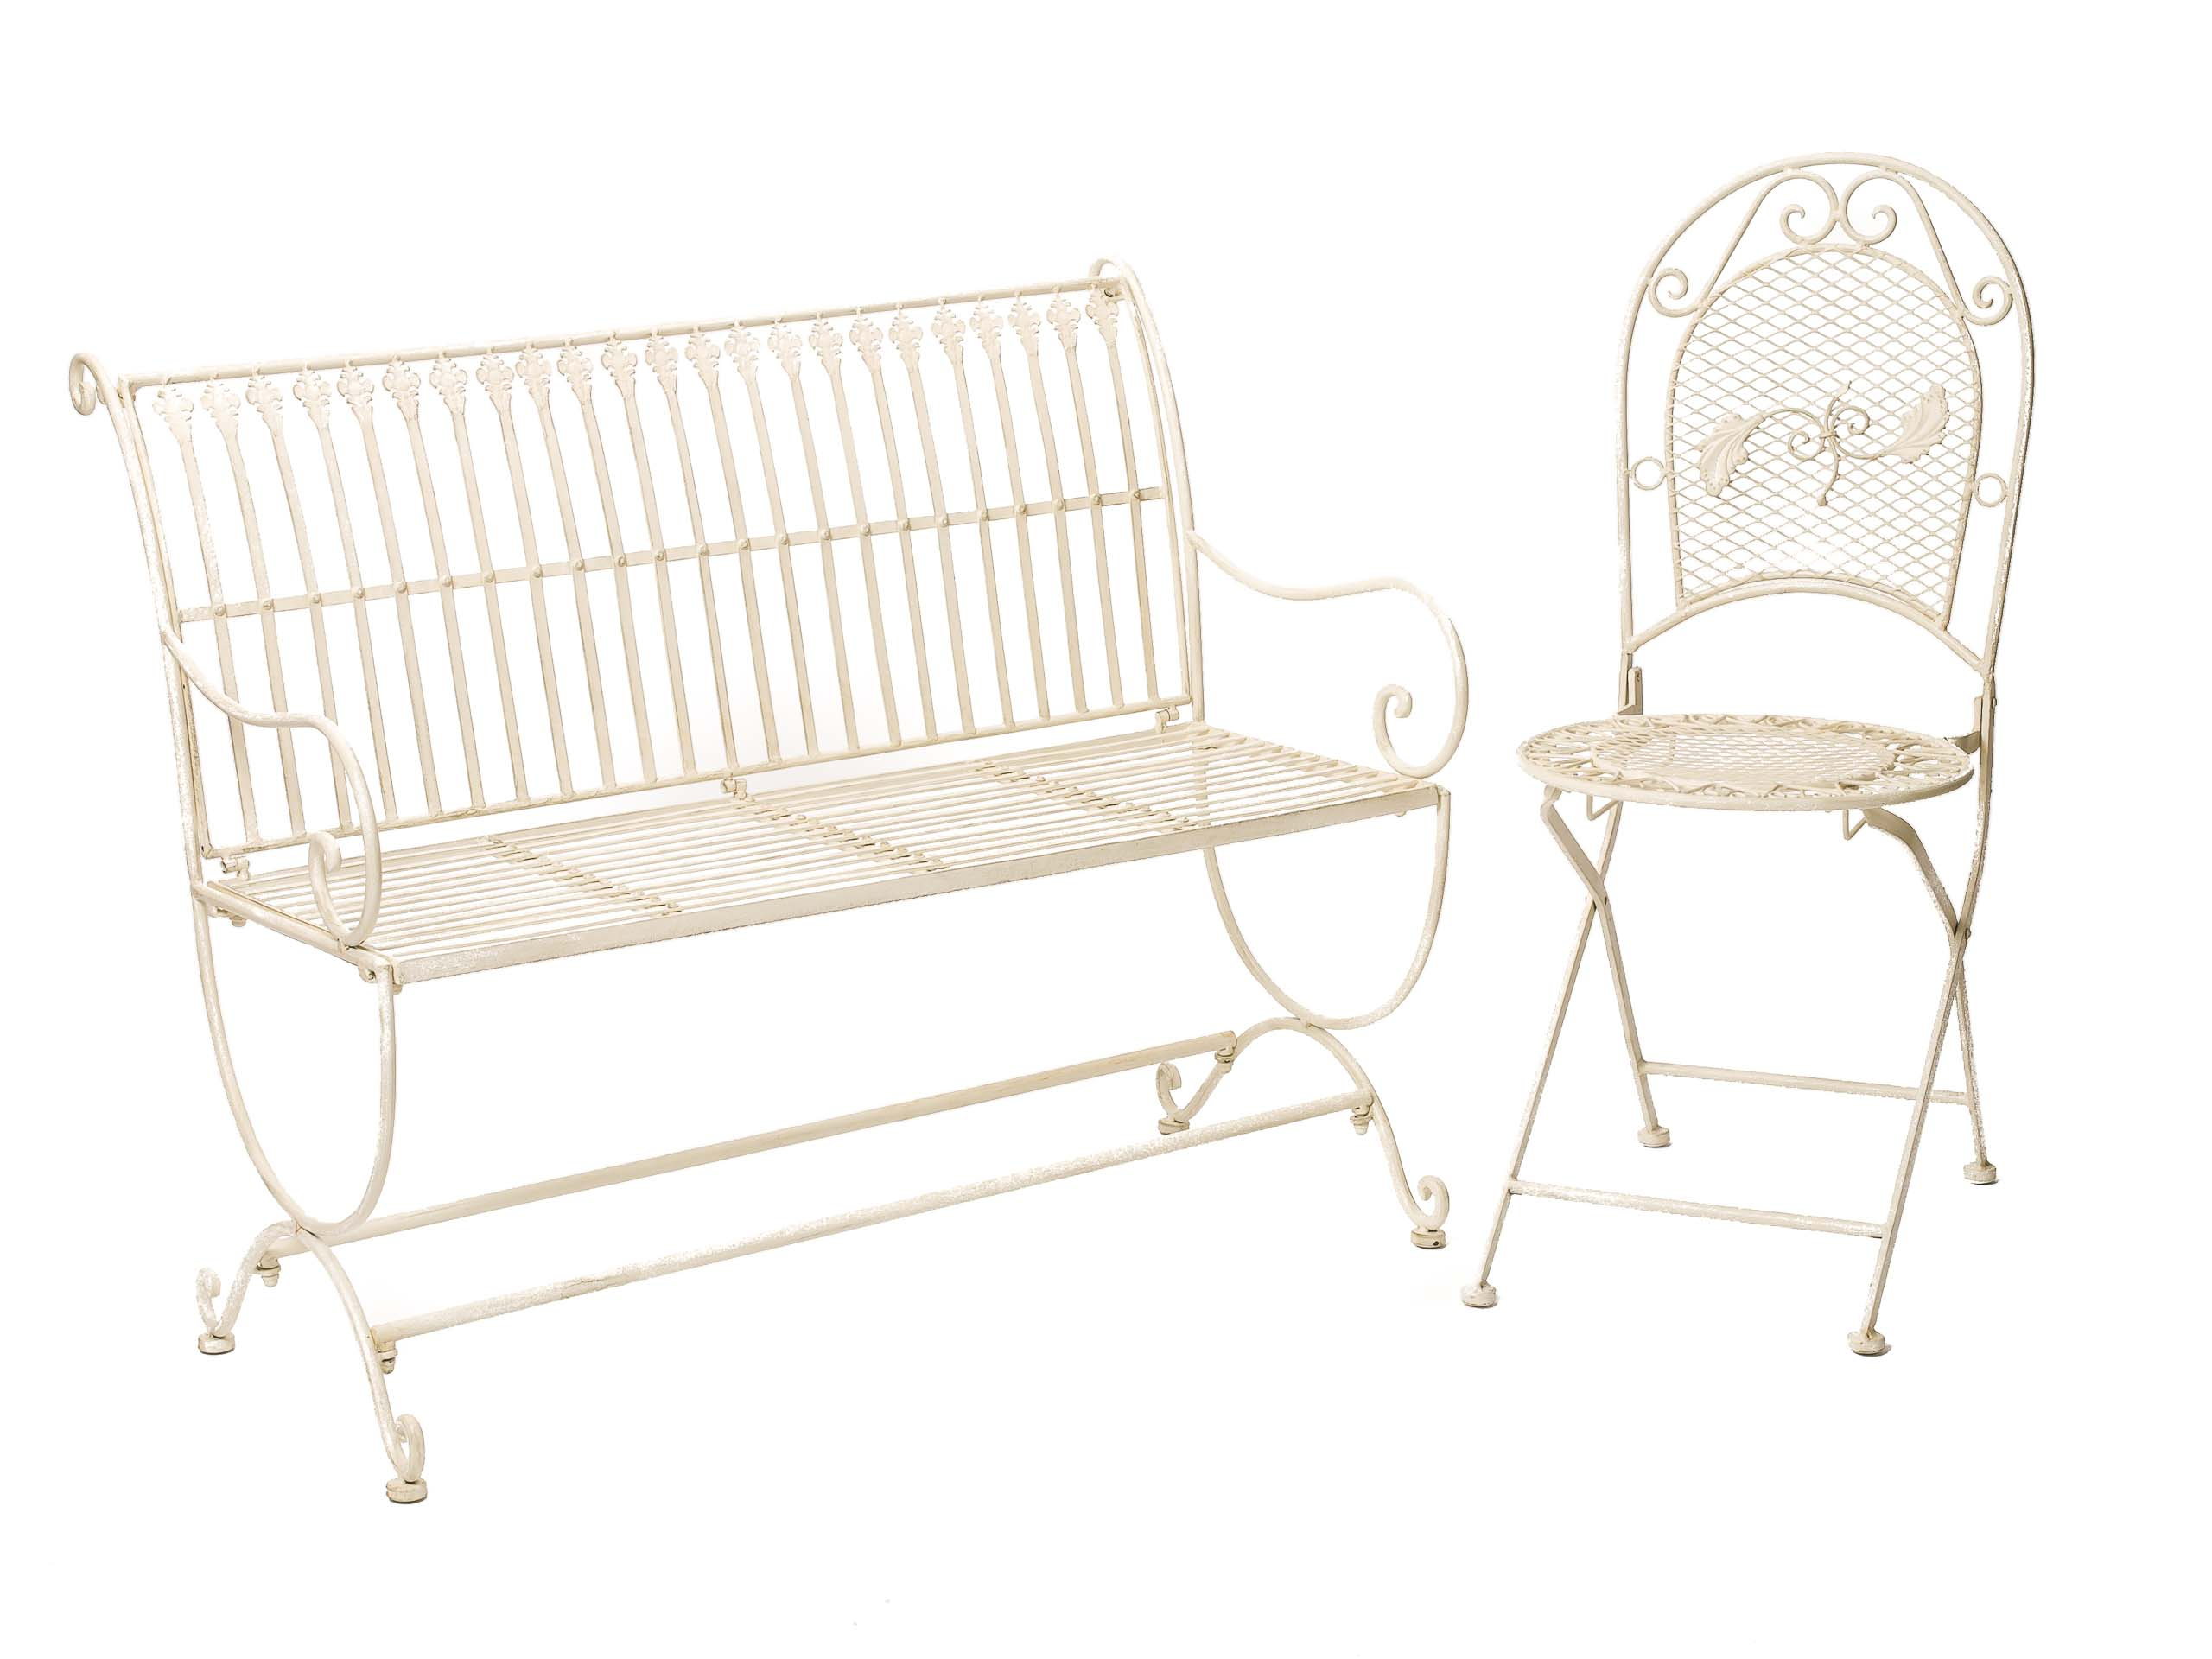 Pleasant Vintage Style Garden Bench Fleur De Lis Design Wrought Iron White Cream Gmtry Best Dining Table And Chair Ideas Images Gmtryco